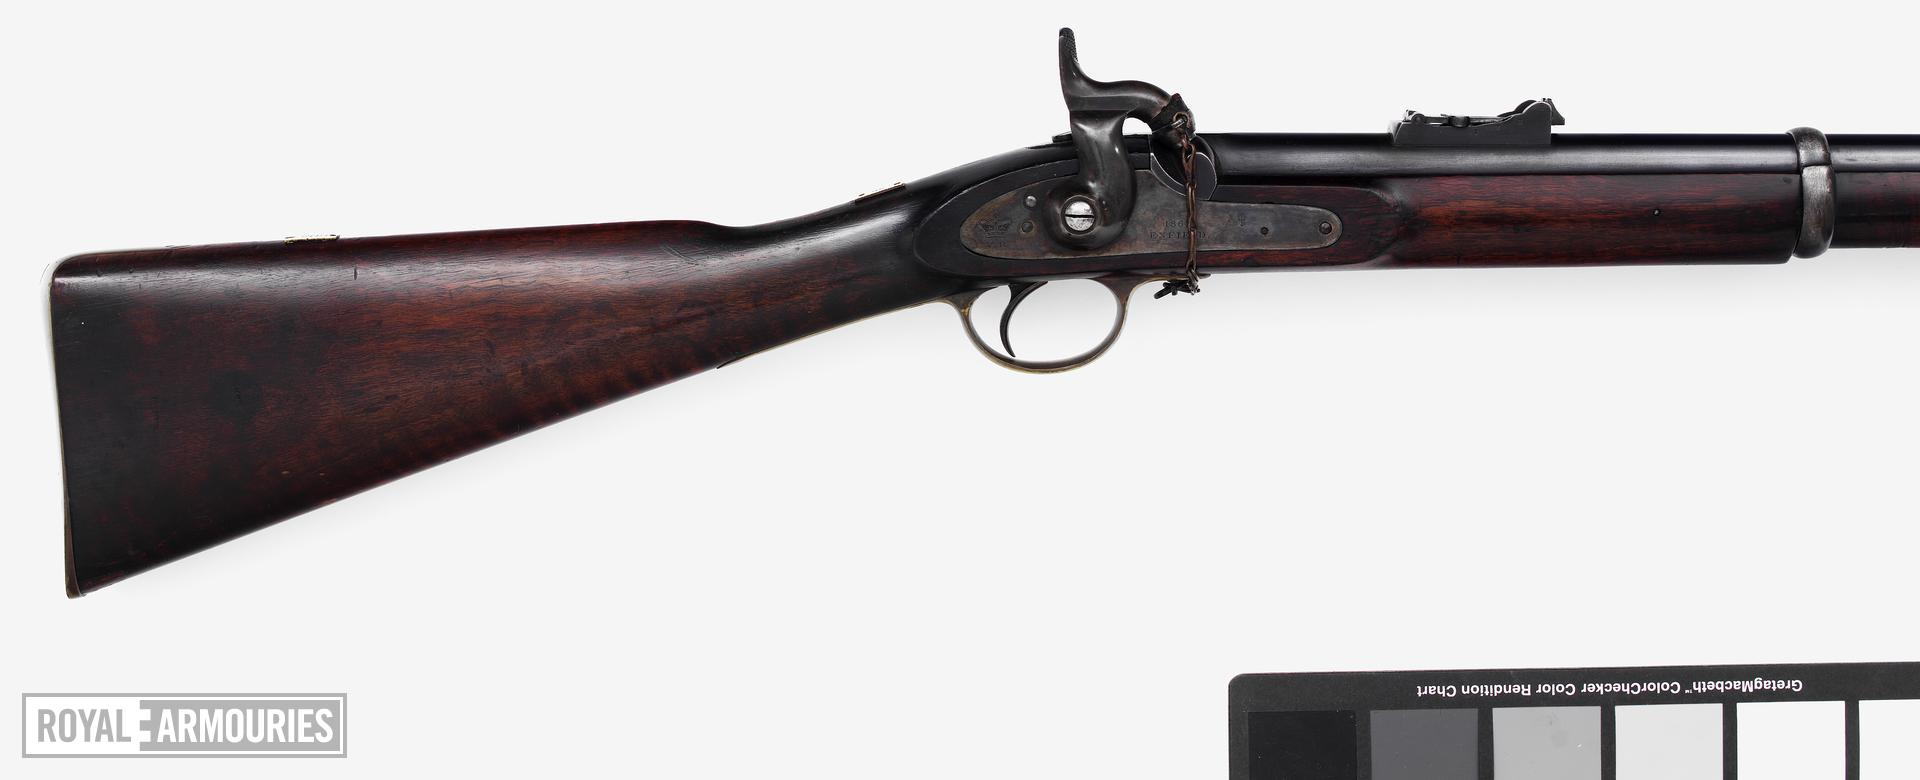 Percussion muzzle-loading military rifle-musket - Pattern 1853 Assemblage made up from various pattern 1853 parts